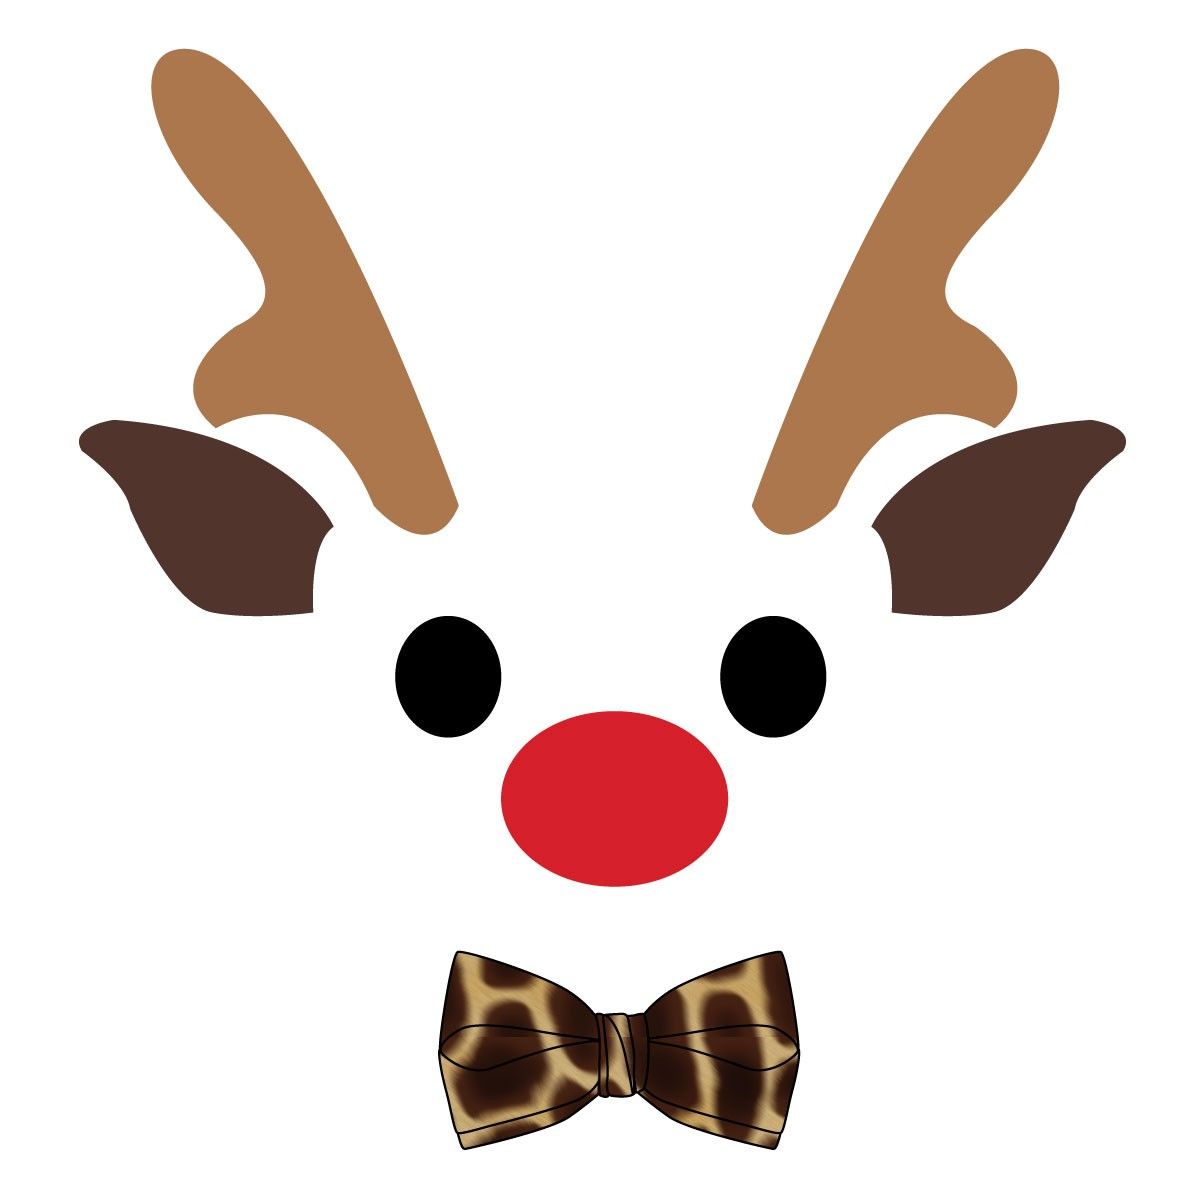 Rudolph clipart baby. Ideal gifts with birth